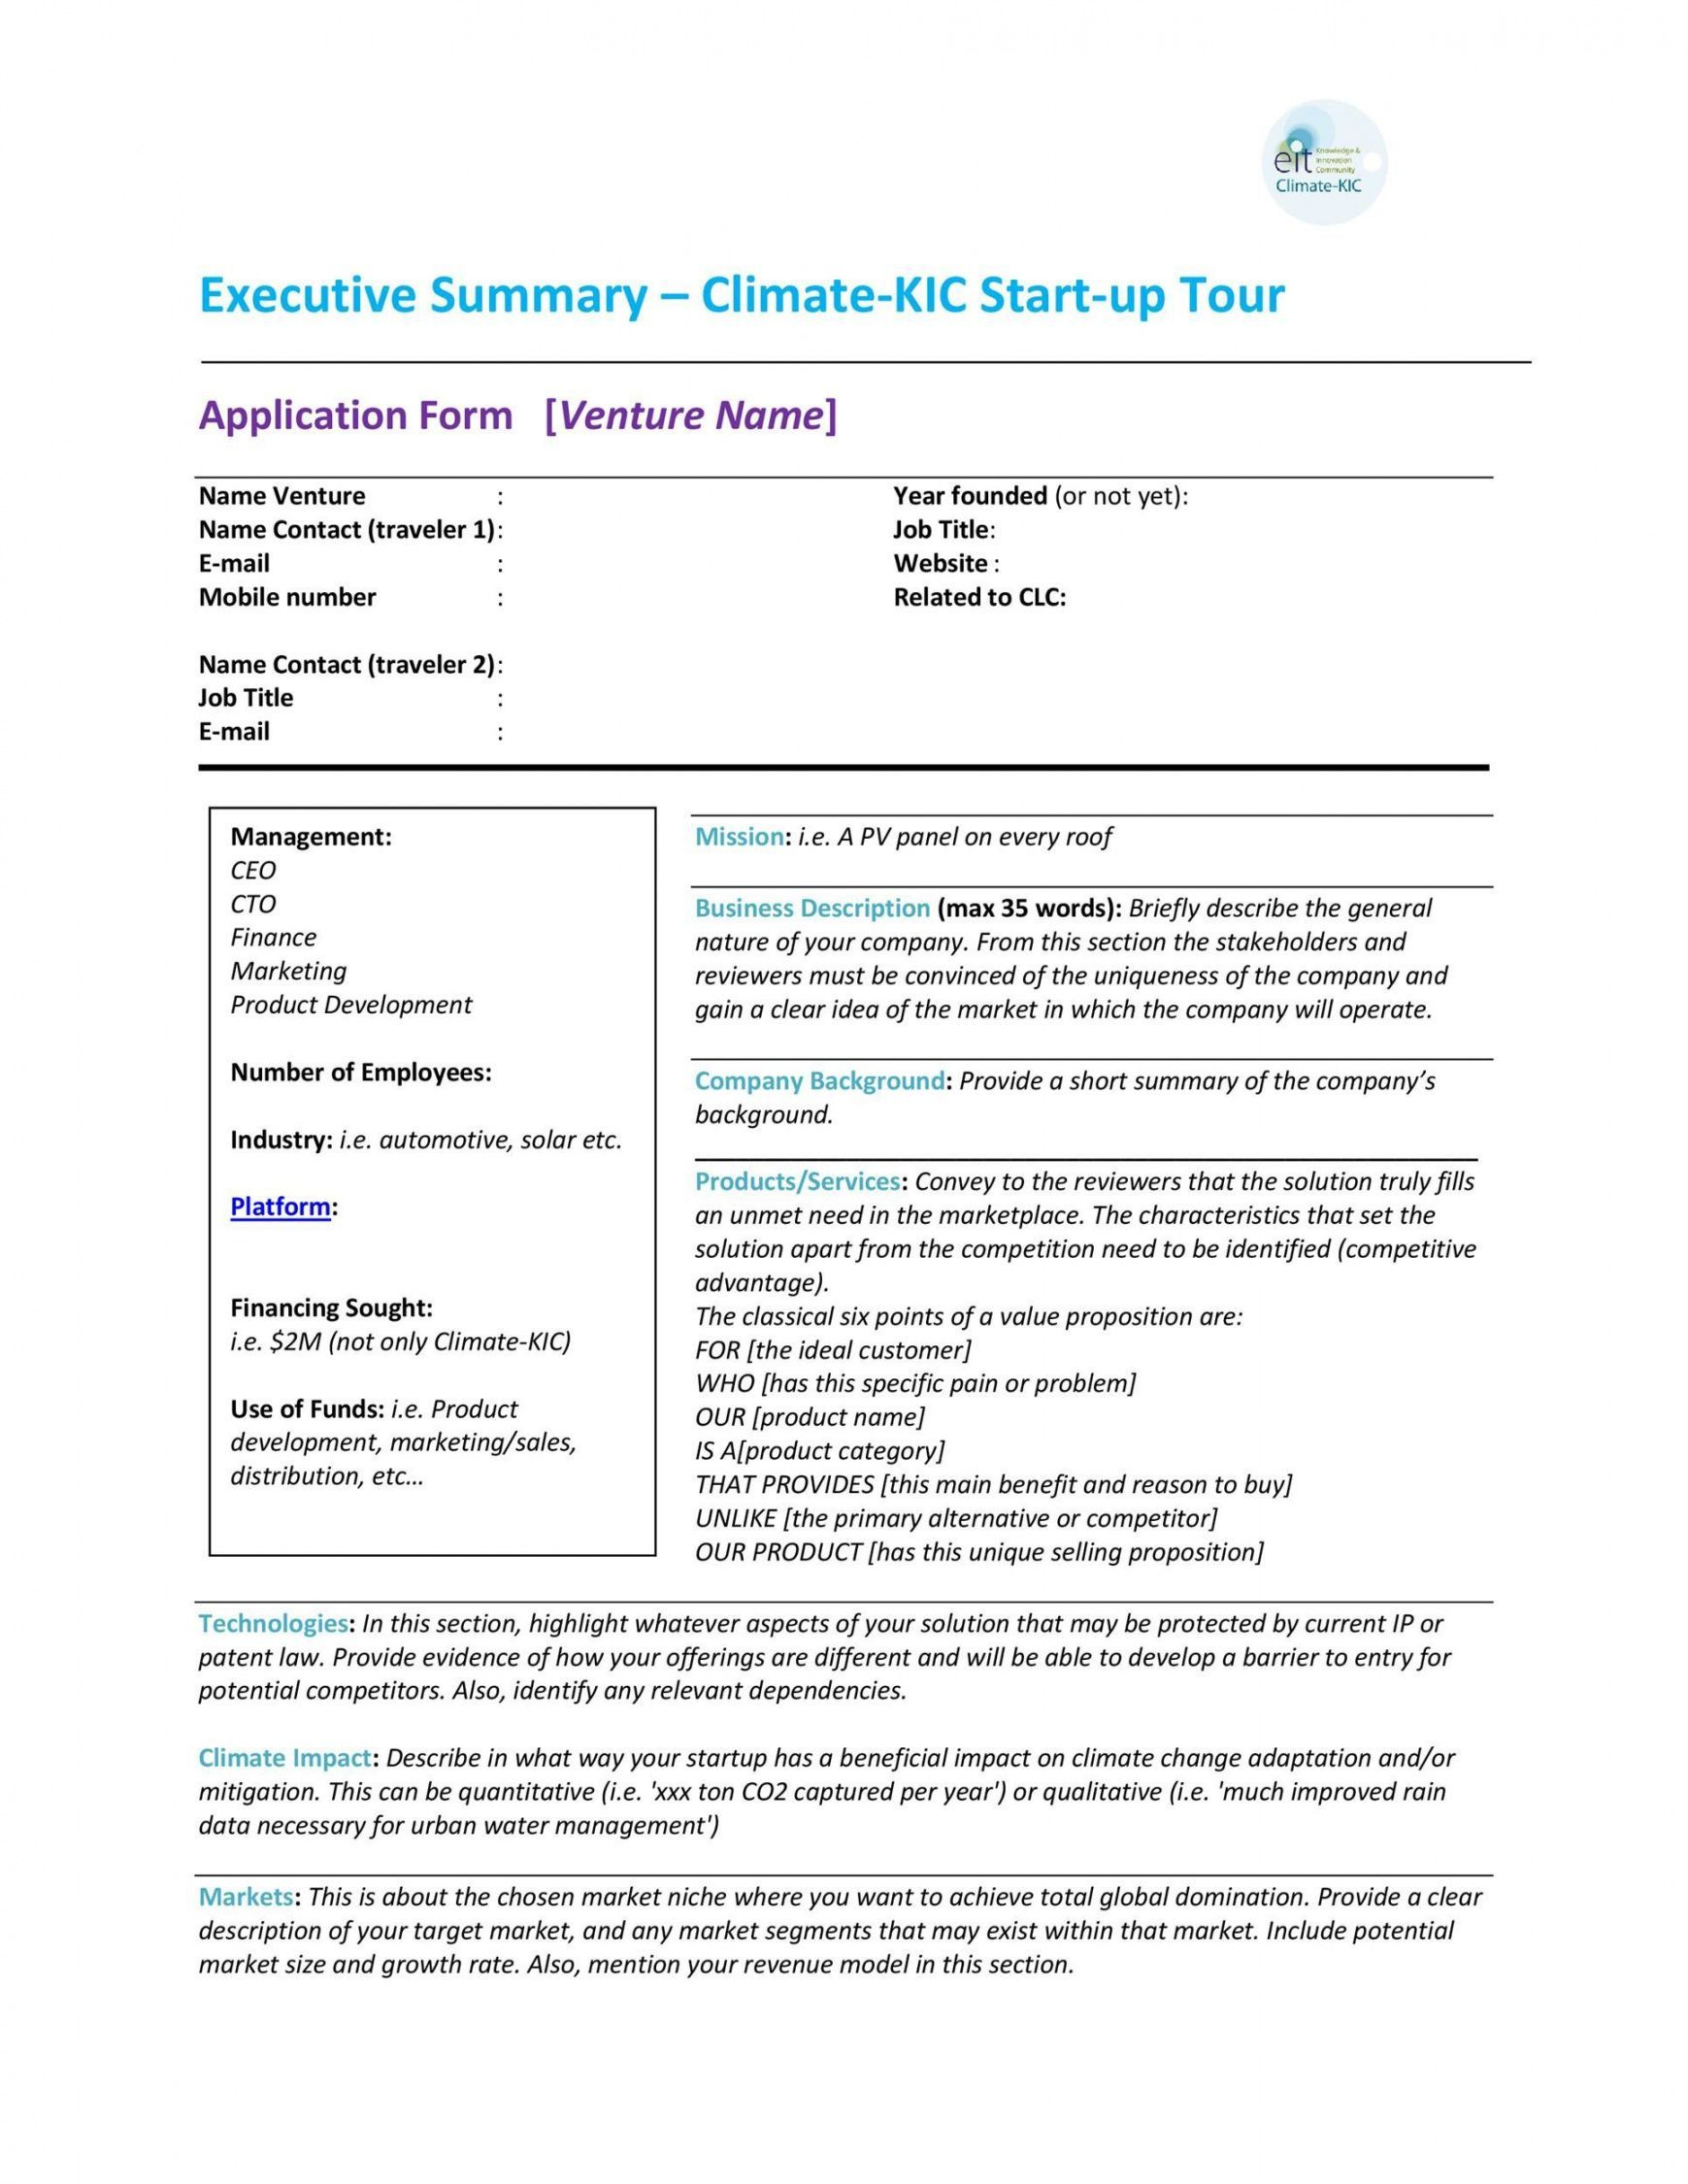 Project Management Summary Template Executive Summary Template Executive Summary Word Template Project management executive summary template